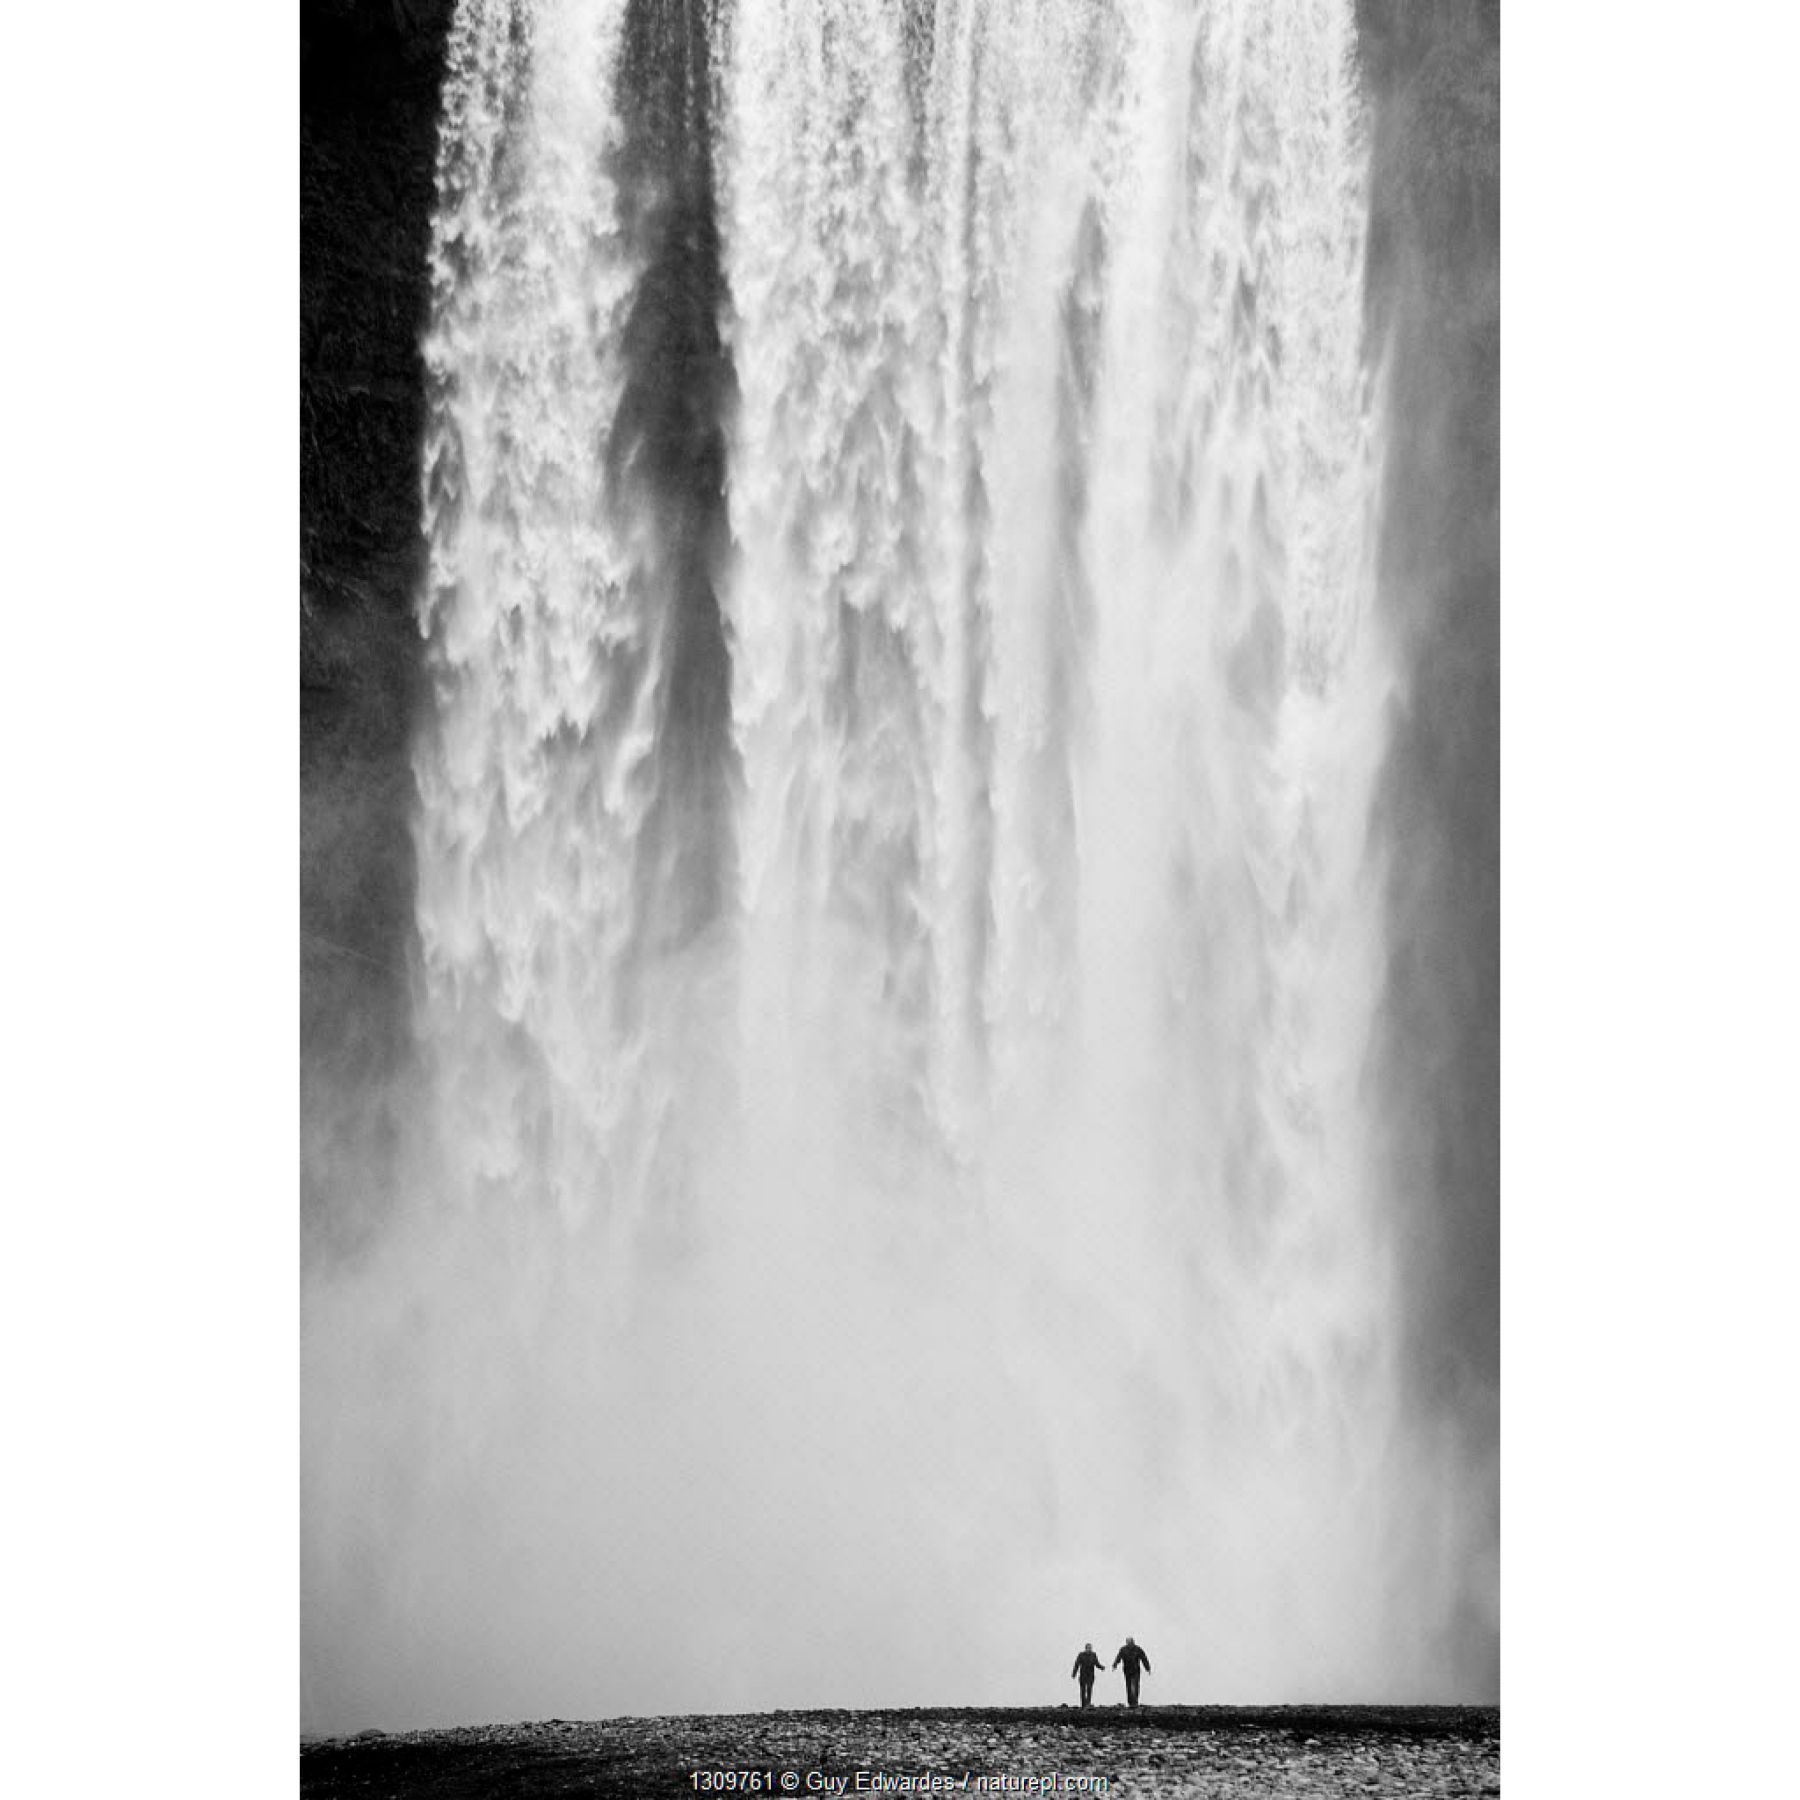 Two people silhouetted in front of Skogafoss waterfall in southern Iceland, June 2009